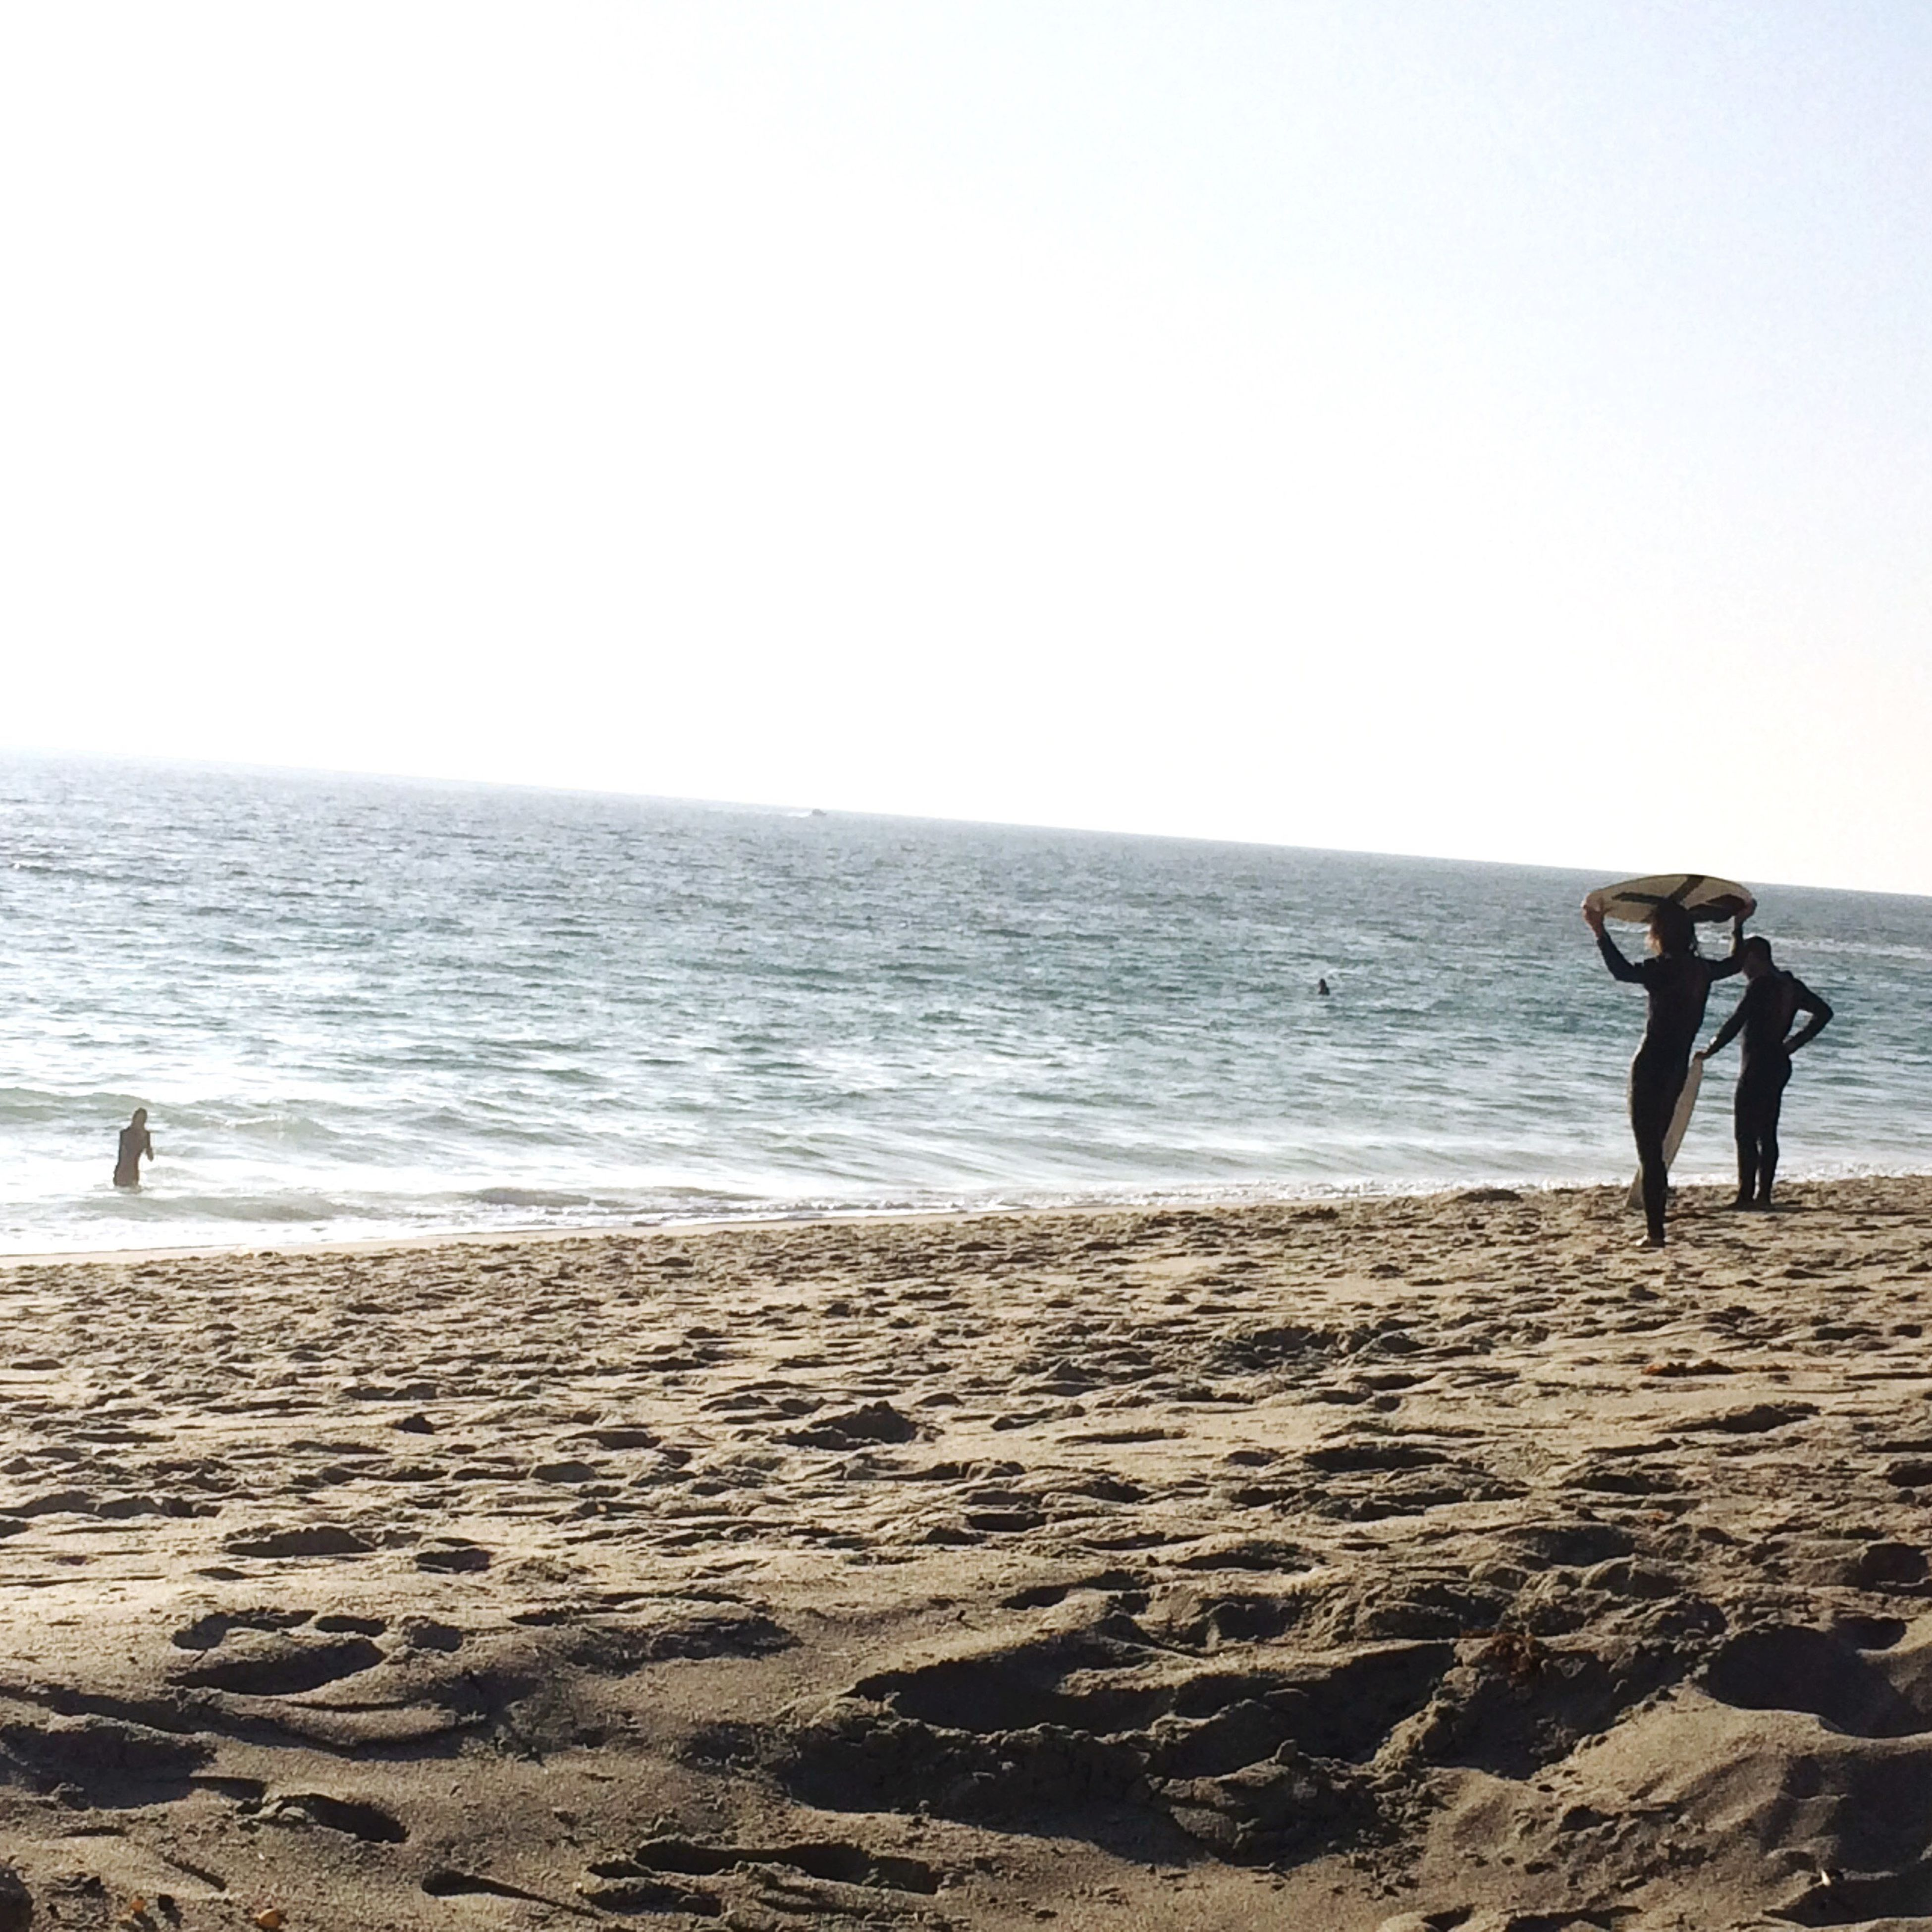 sea, beach, horizon over water, water, real people, sand, shore, full length, leisure activity, lifestyles, nature, clear sky, scenics, sky, standing, outdoors, rear view, beauty in nature, men, day, adult, people